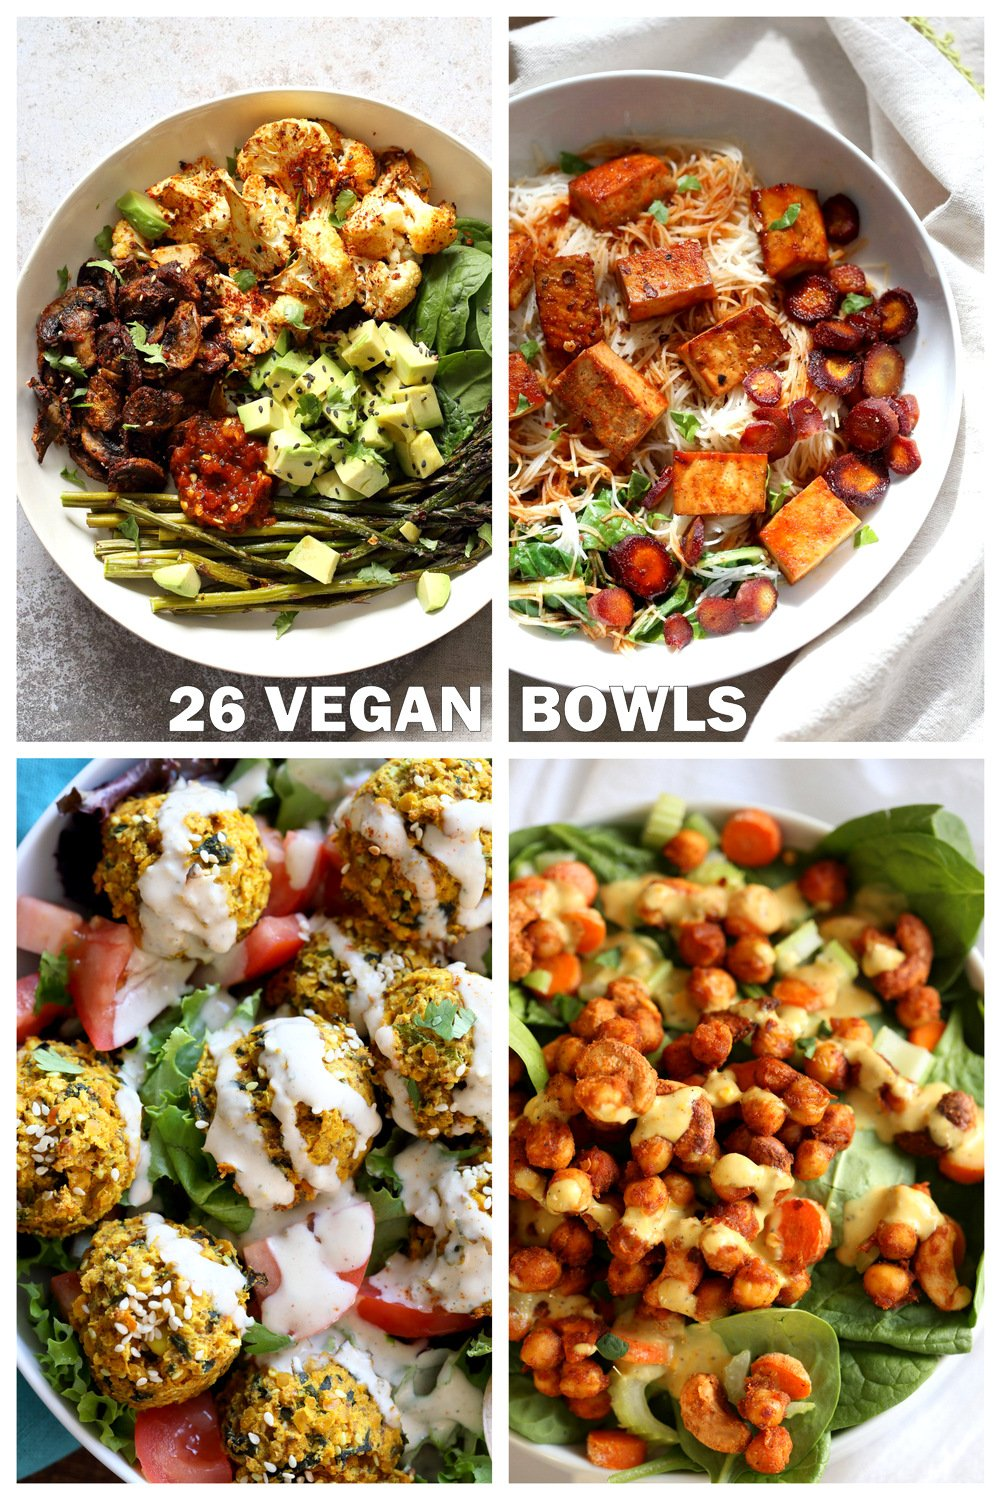 26 Vegan Bowl Recipes to make this Summer. Vegan Buddha Bowls that make nourishing lunches and dinners and not just salad. Roasted Veggie Bowl, Baked Tofu Bowls, Taco Bowls and more. Gluten-free Soy-free Nut-free options. #VeganBowls #VeganRicha